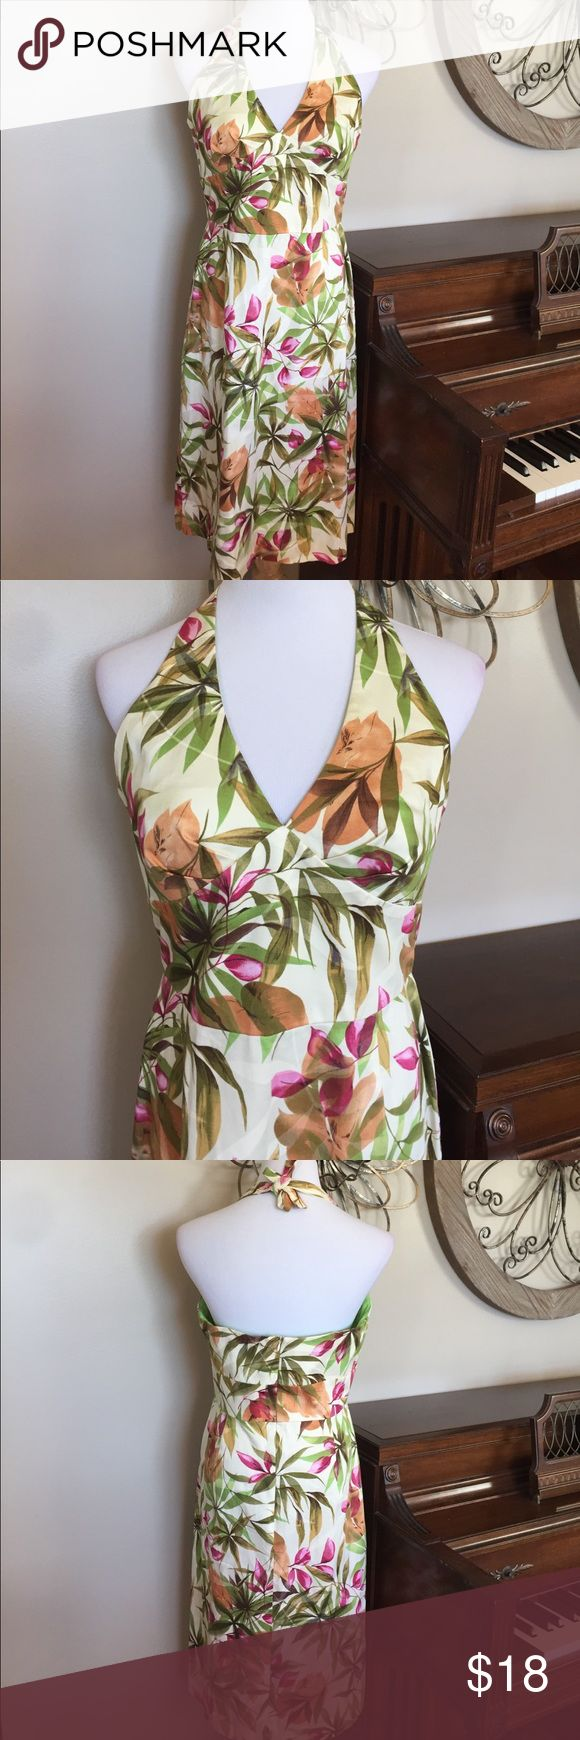 Donna Ricco Size 12 Tropical Halter Dress Excellent Condition! Size 12 by Donna Ricco - 97% Cotton 3% Spandex Donna Ricco Dresses Midi